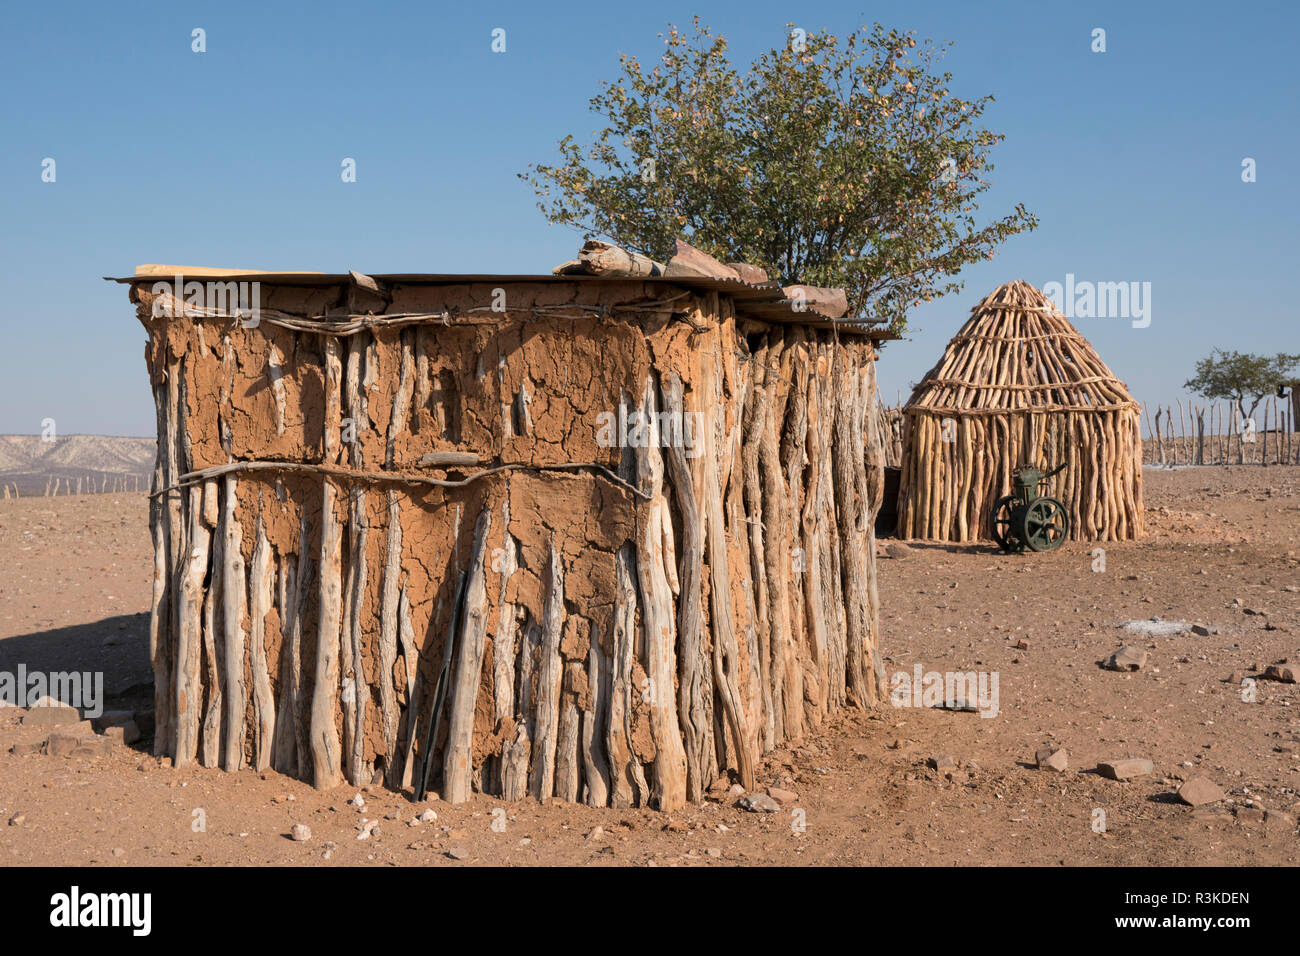 Traditional hut construction in a remote village outside of Opuwo, Namibia. - Stock Image